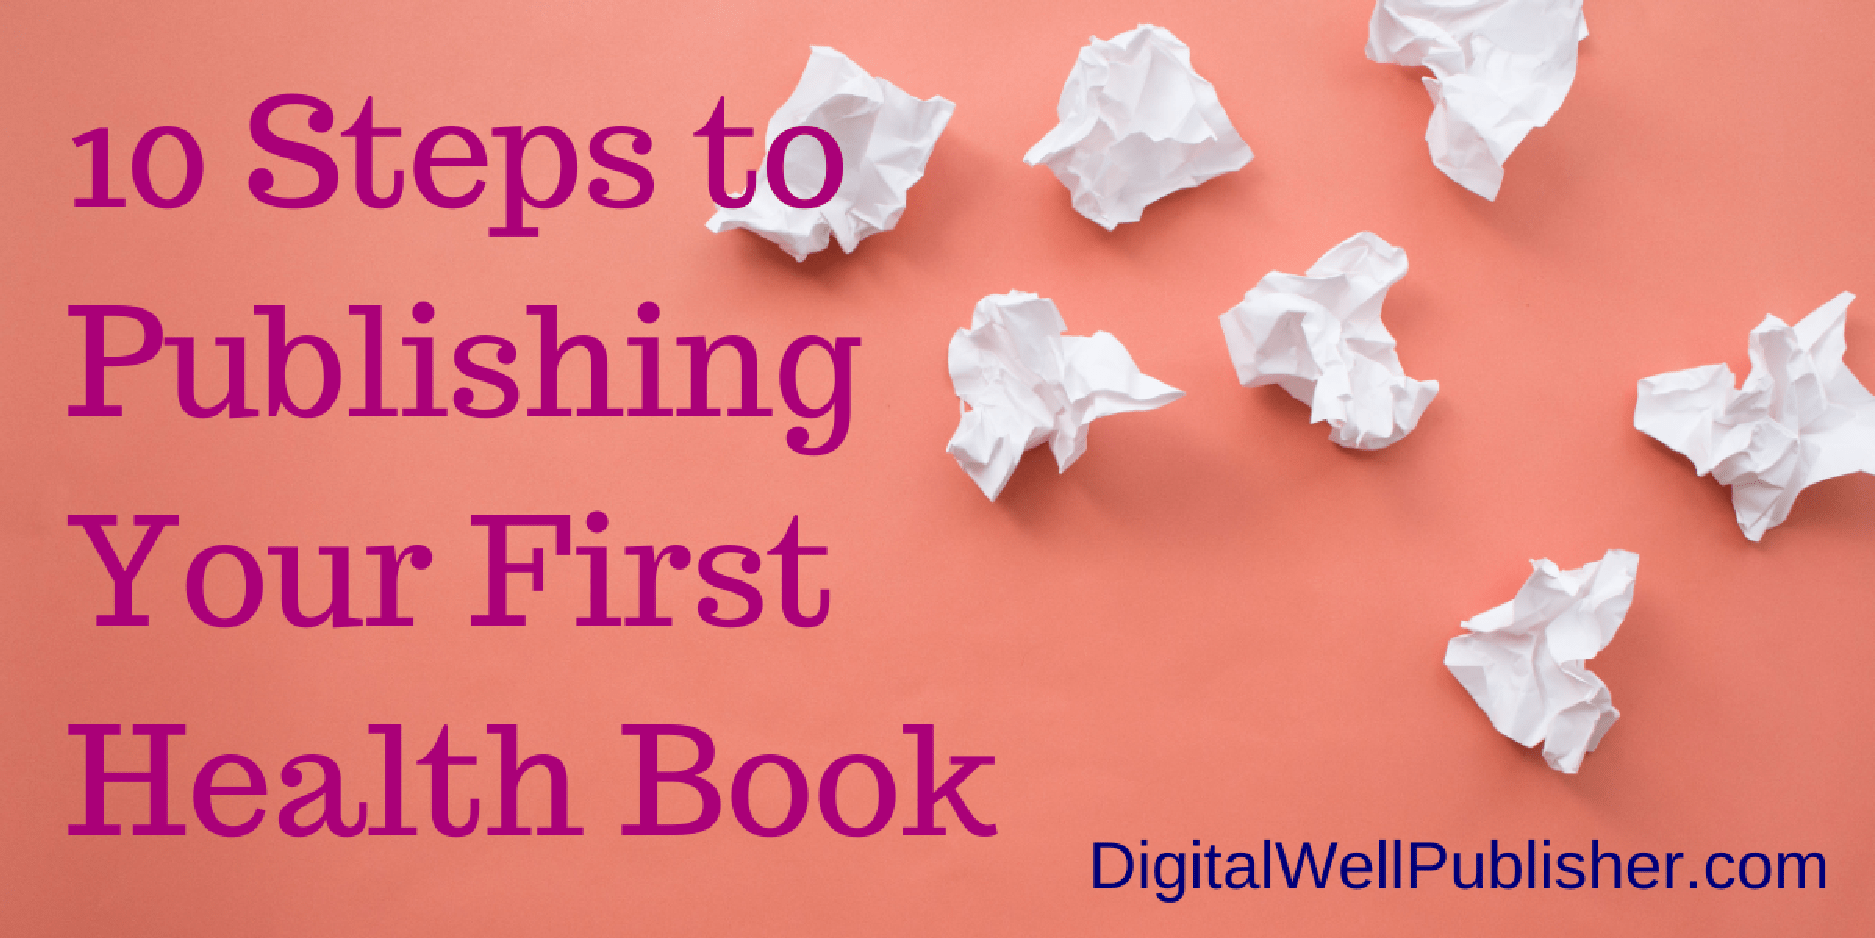 10 Steps to Publishing Your First Health Book